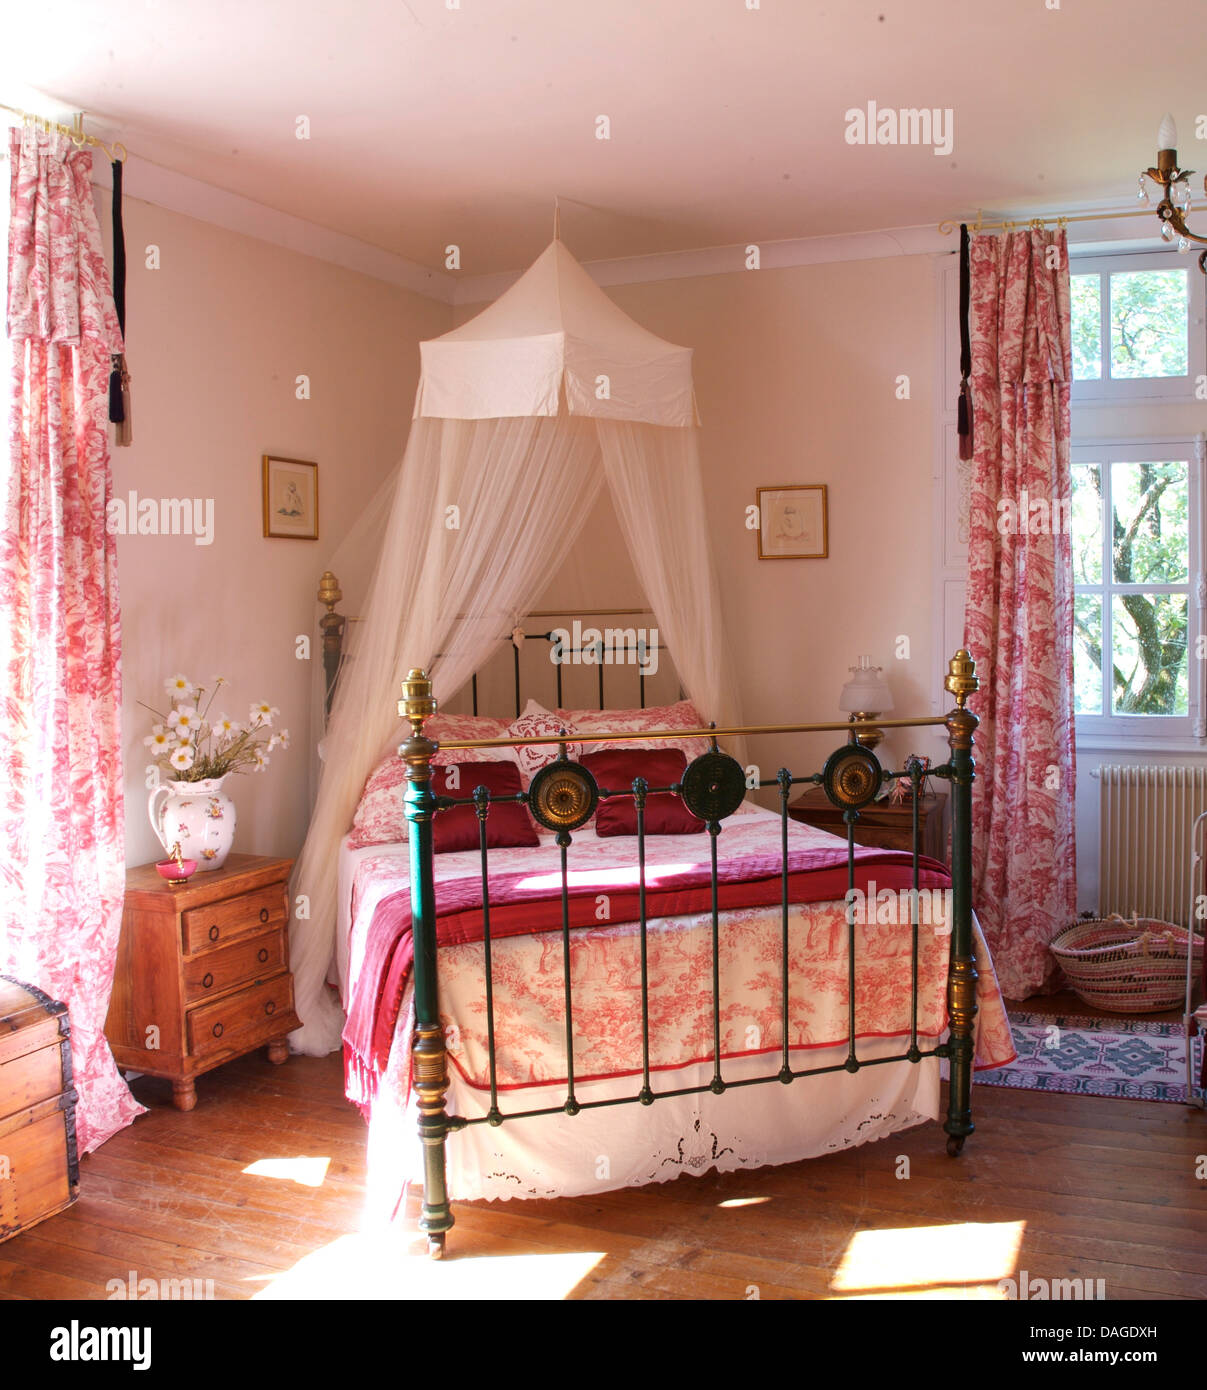 Bedroom Decorating Ideas Totally Toile: White Voile Mosquito Net Above Brass Bed With Toile De